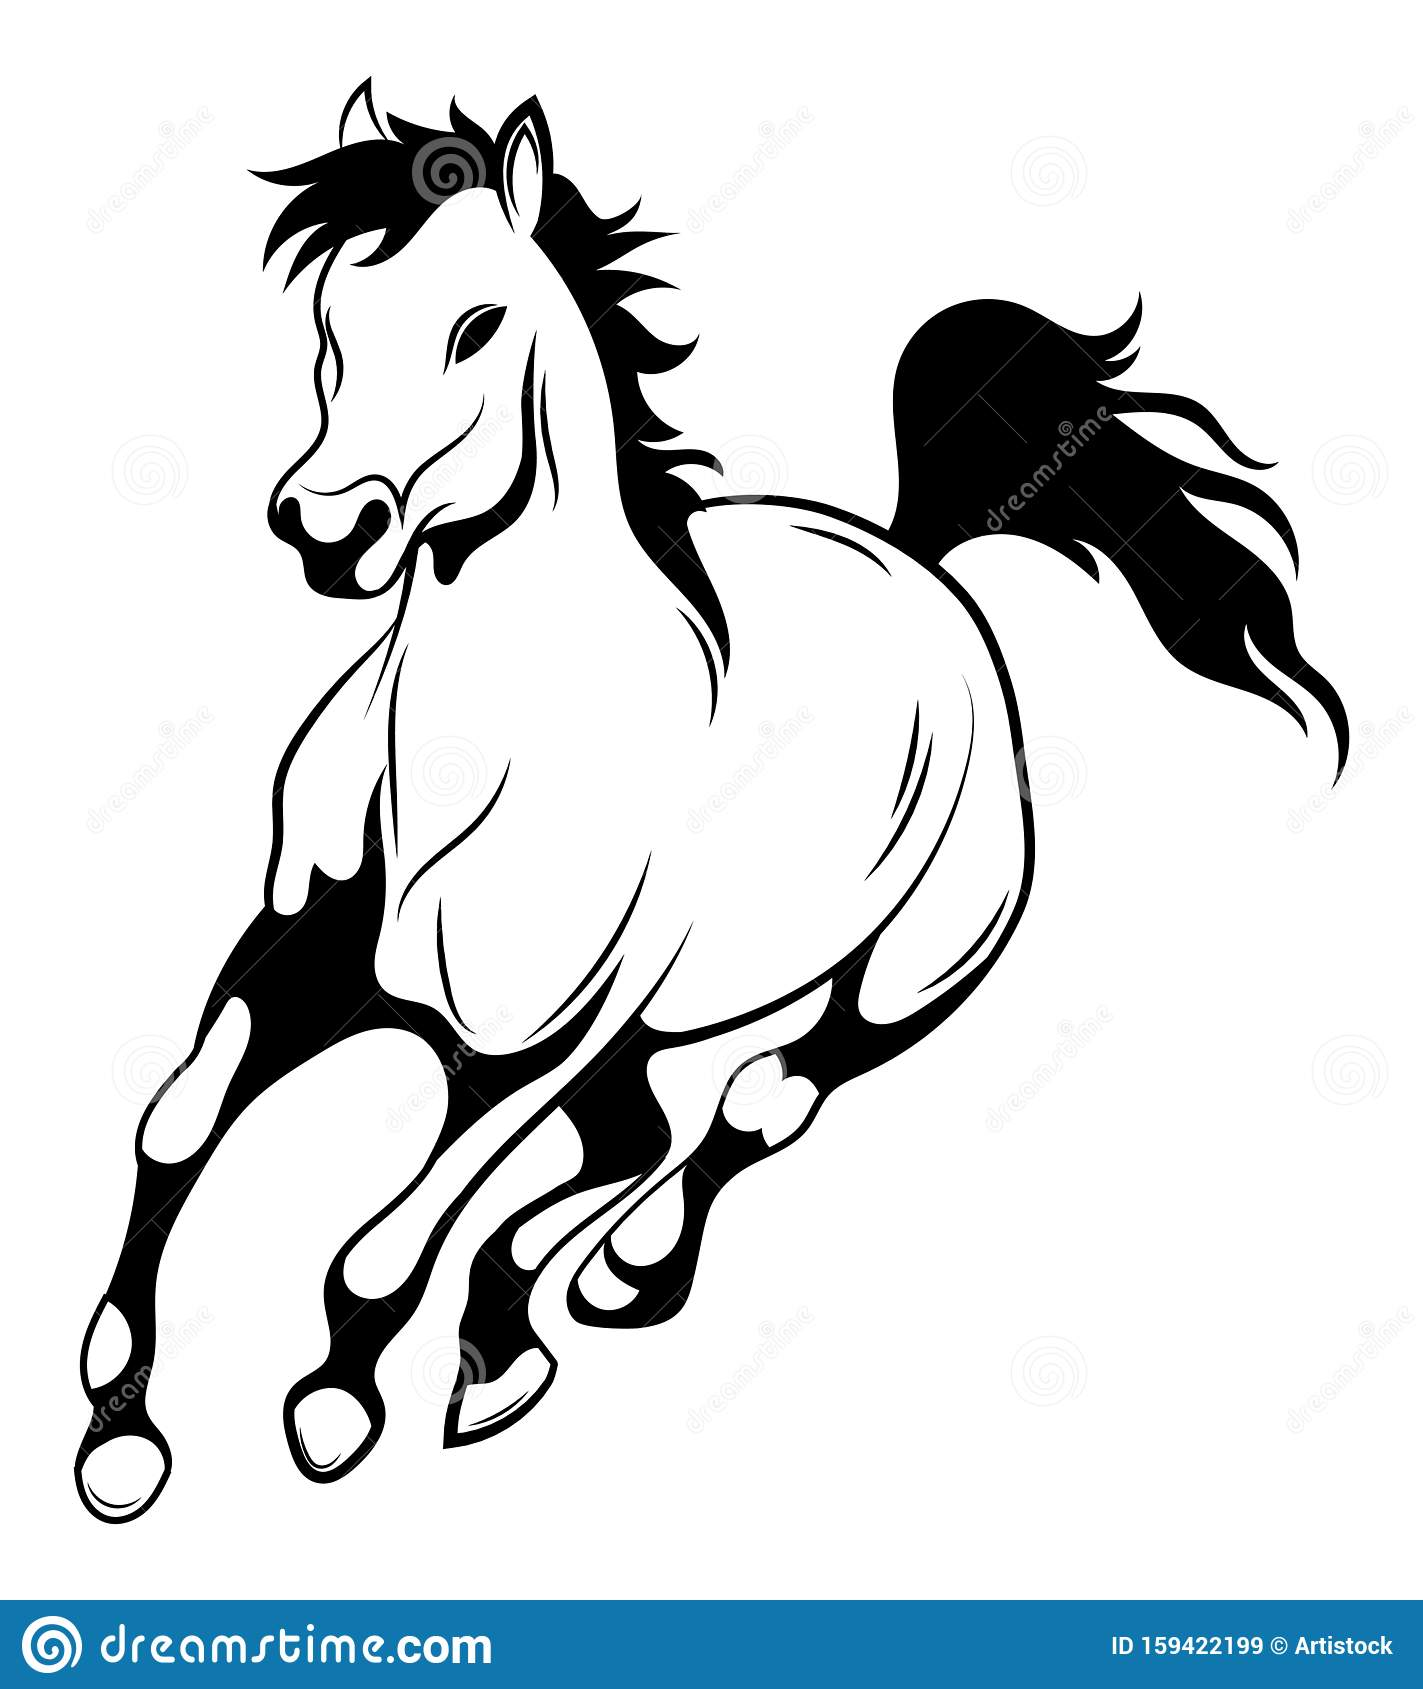 Running Horse Black And White Vector Illustration Of Running Wild Mustang Silhouette Of A Farm Animal Tattoo Stock Vector Illustration Of Design Equestrian 159422199